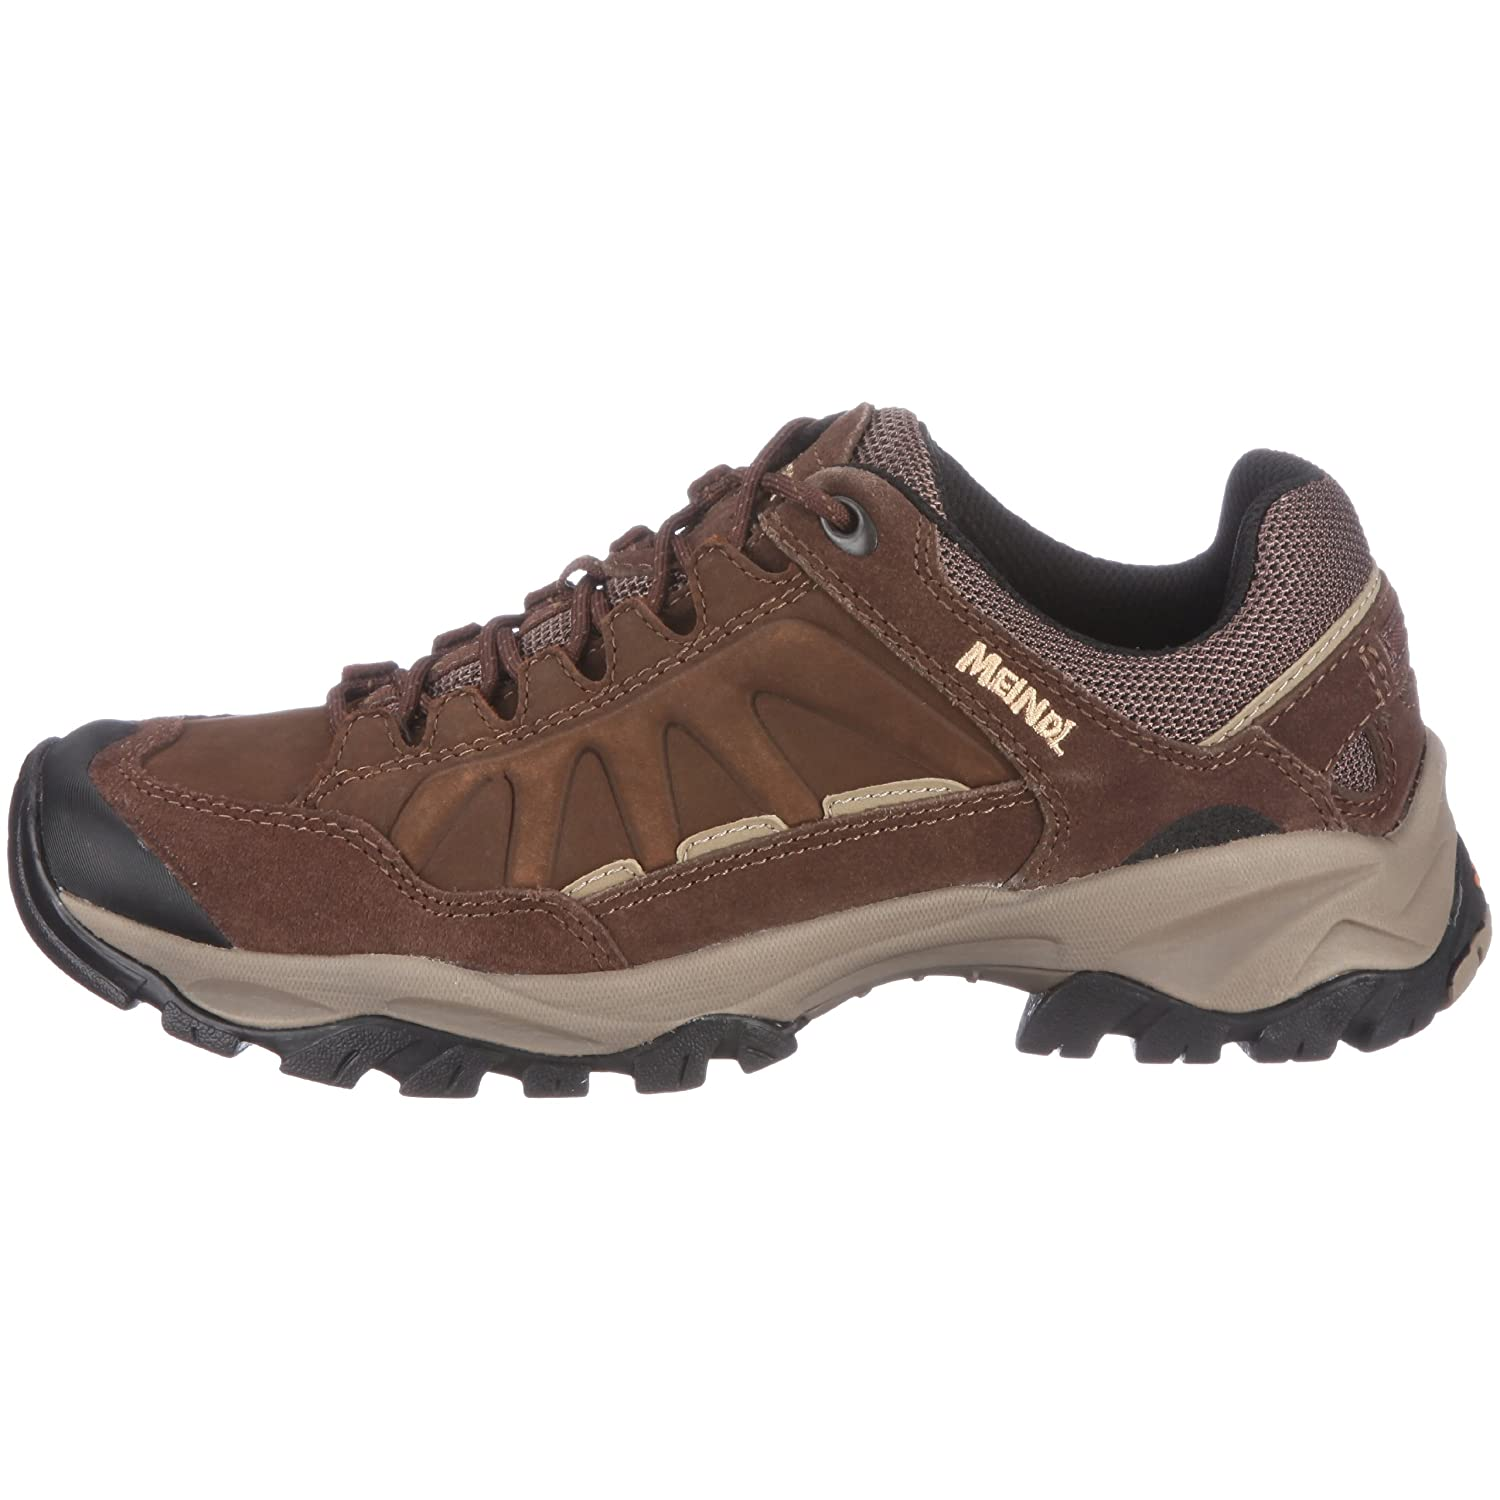 Meindl Nebraska Lady 680125 Damen Damen Damen Sportschuhe - Outdoor 3be5d5